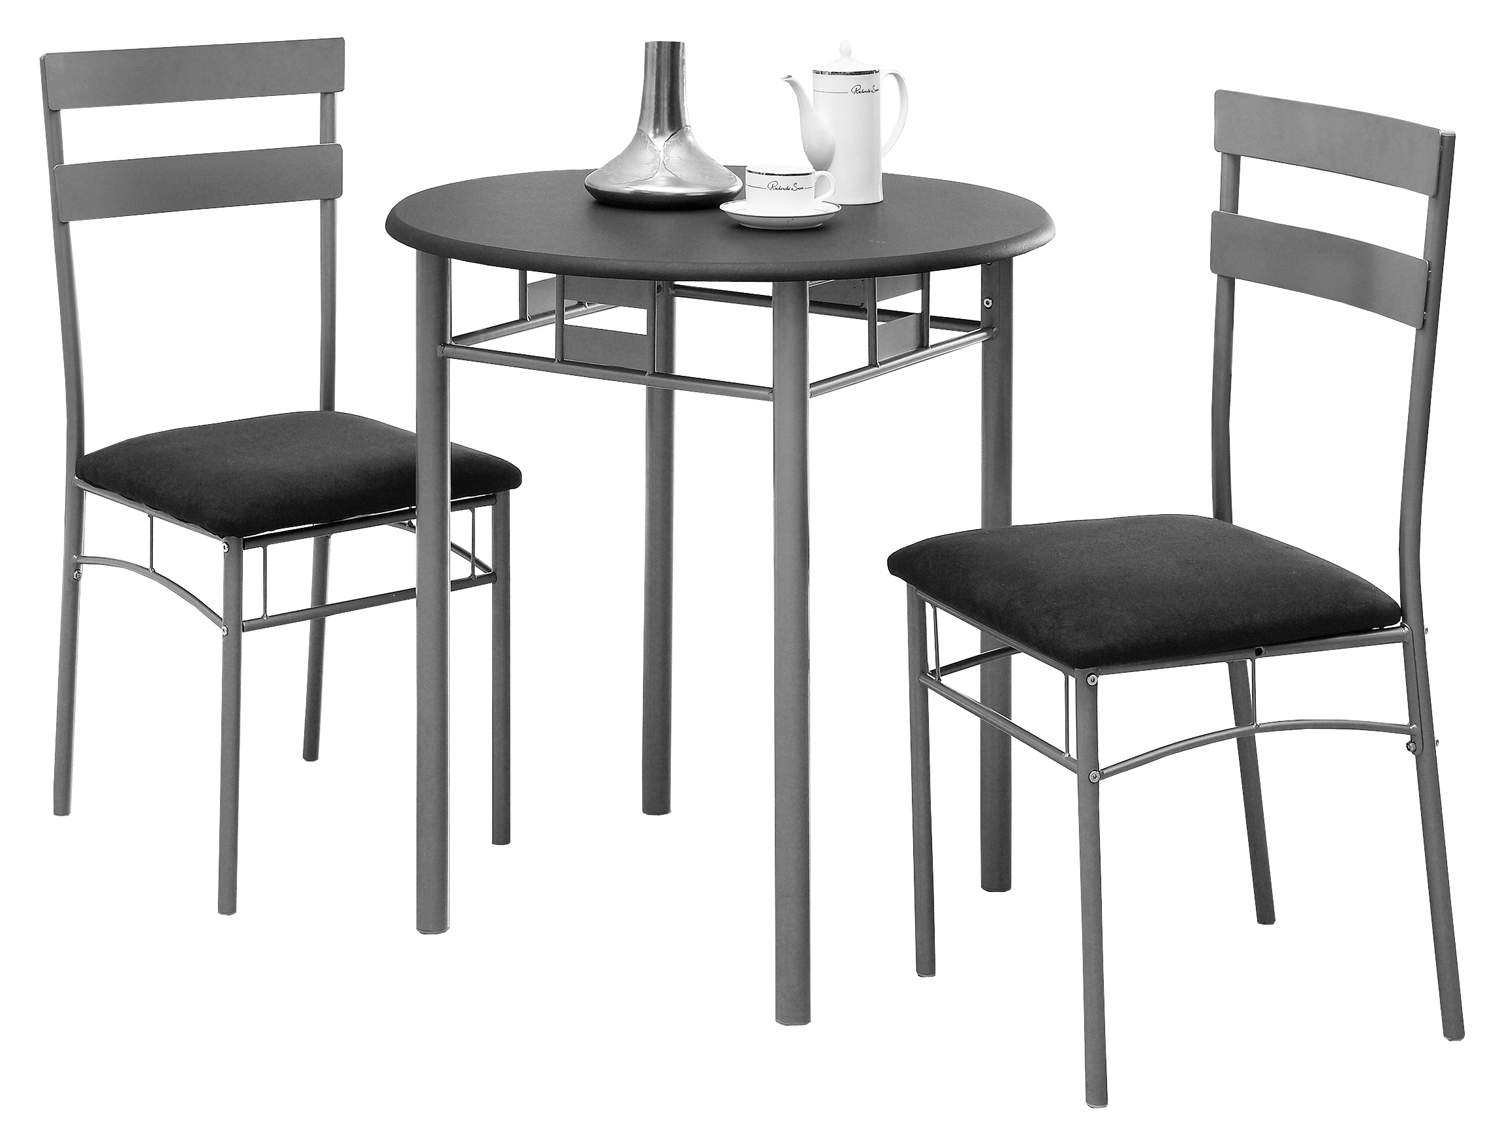 3 Pieces Bistro Set, Black and Silver Metal